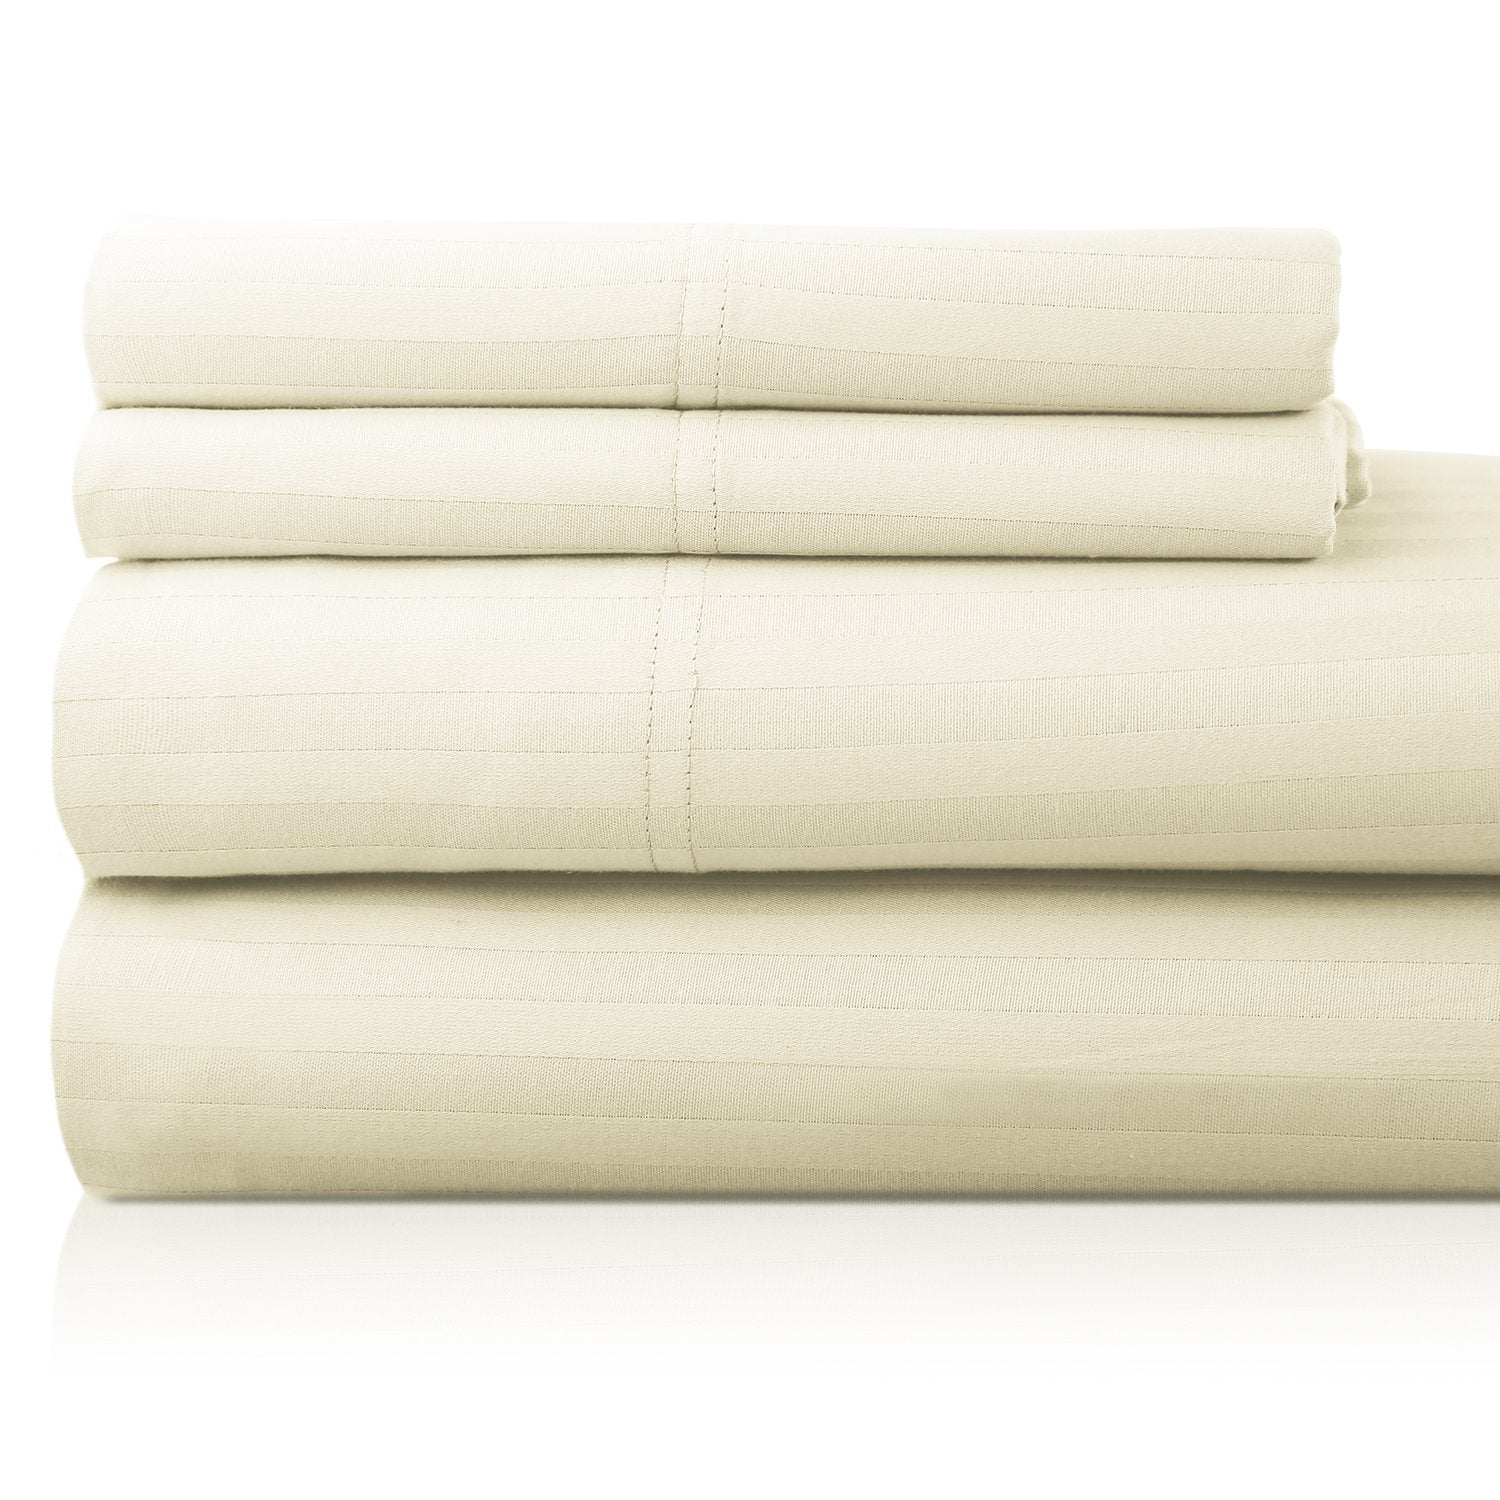 Sheet Sets Shop Luxury Bedding And Bath At Luxor Linens